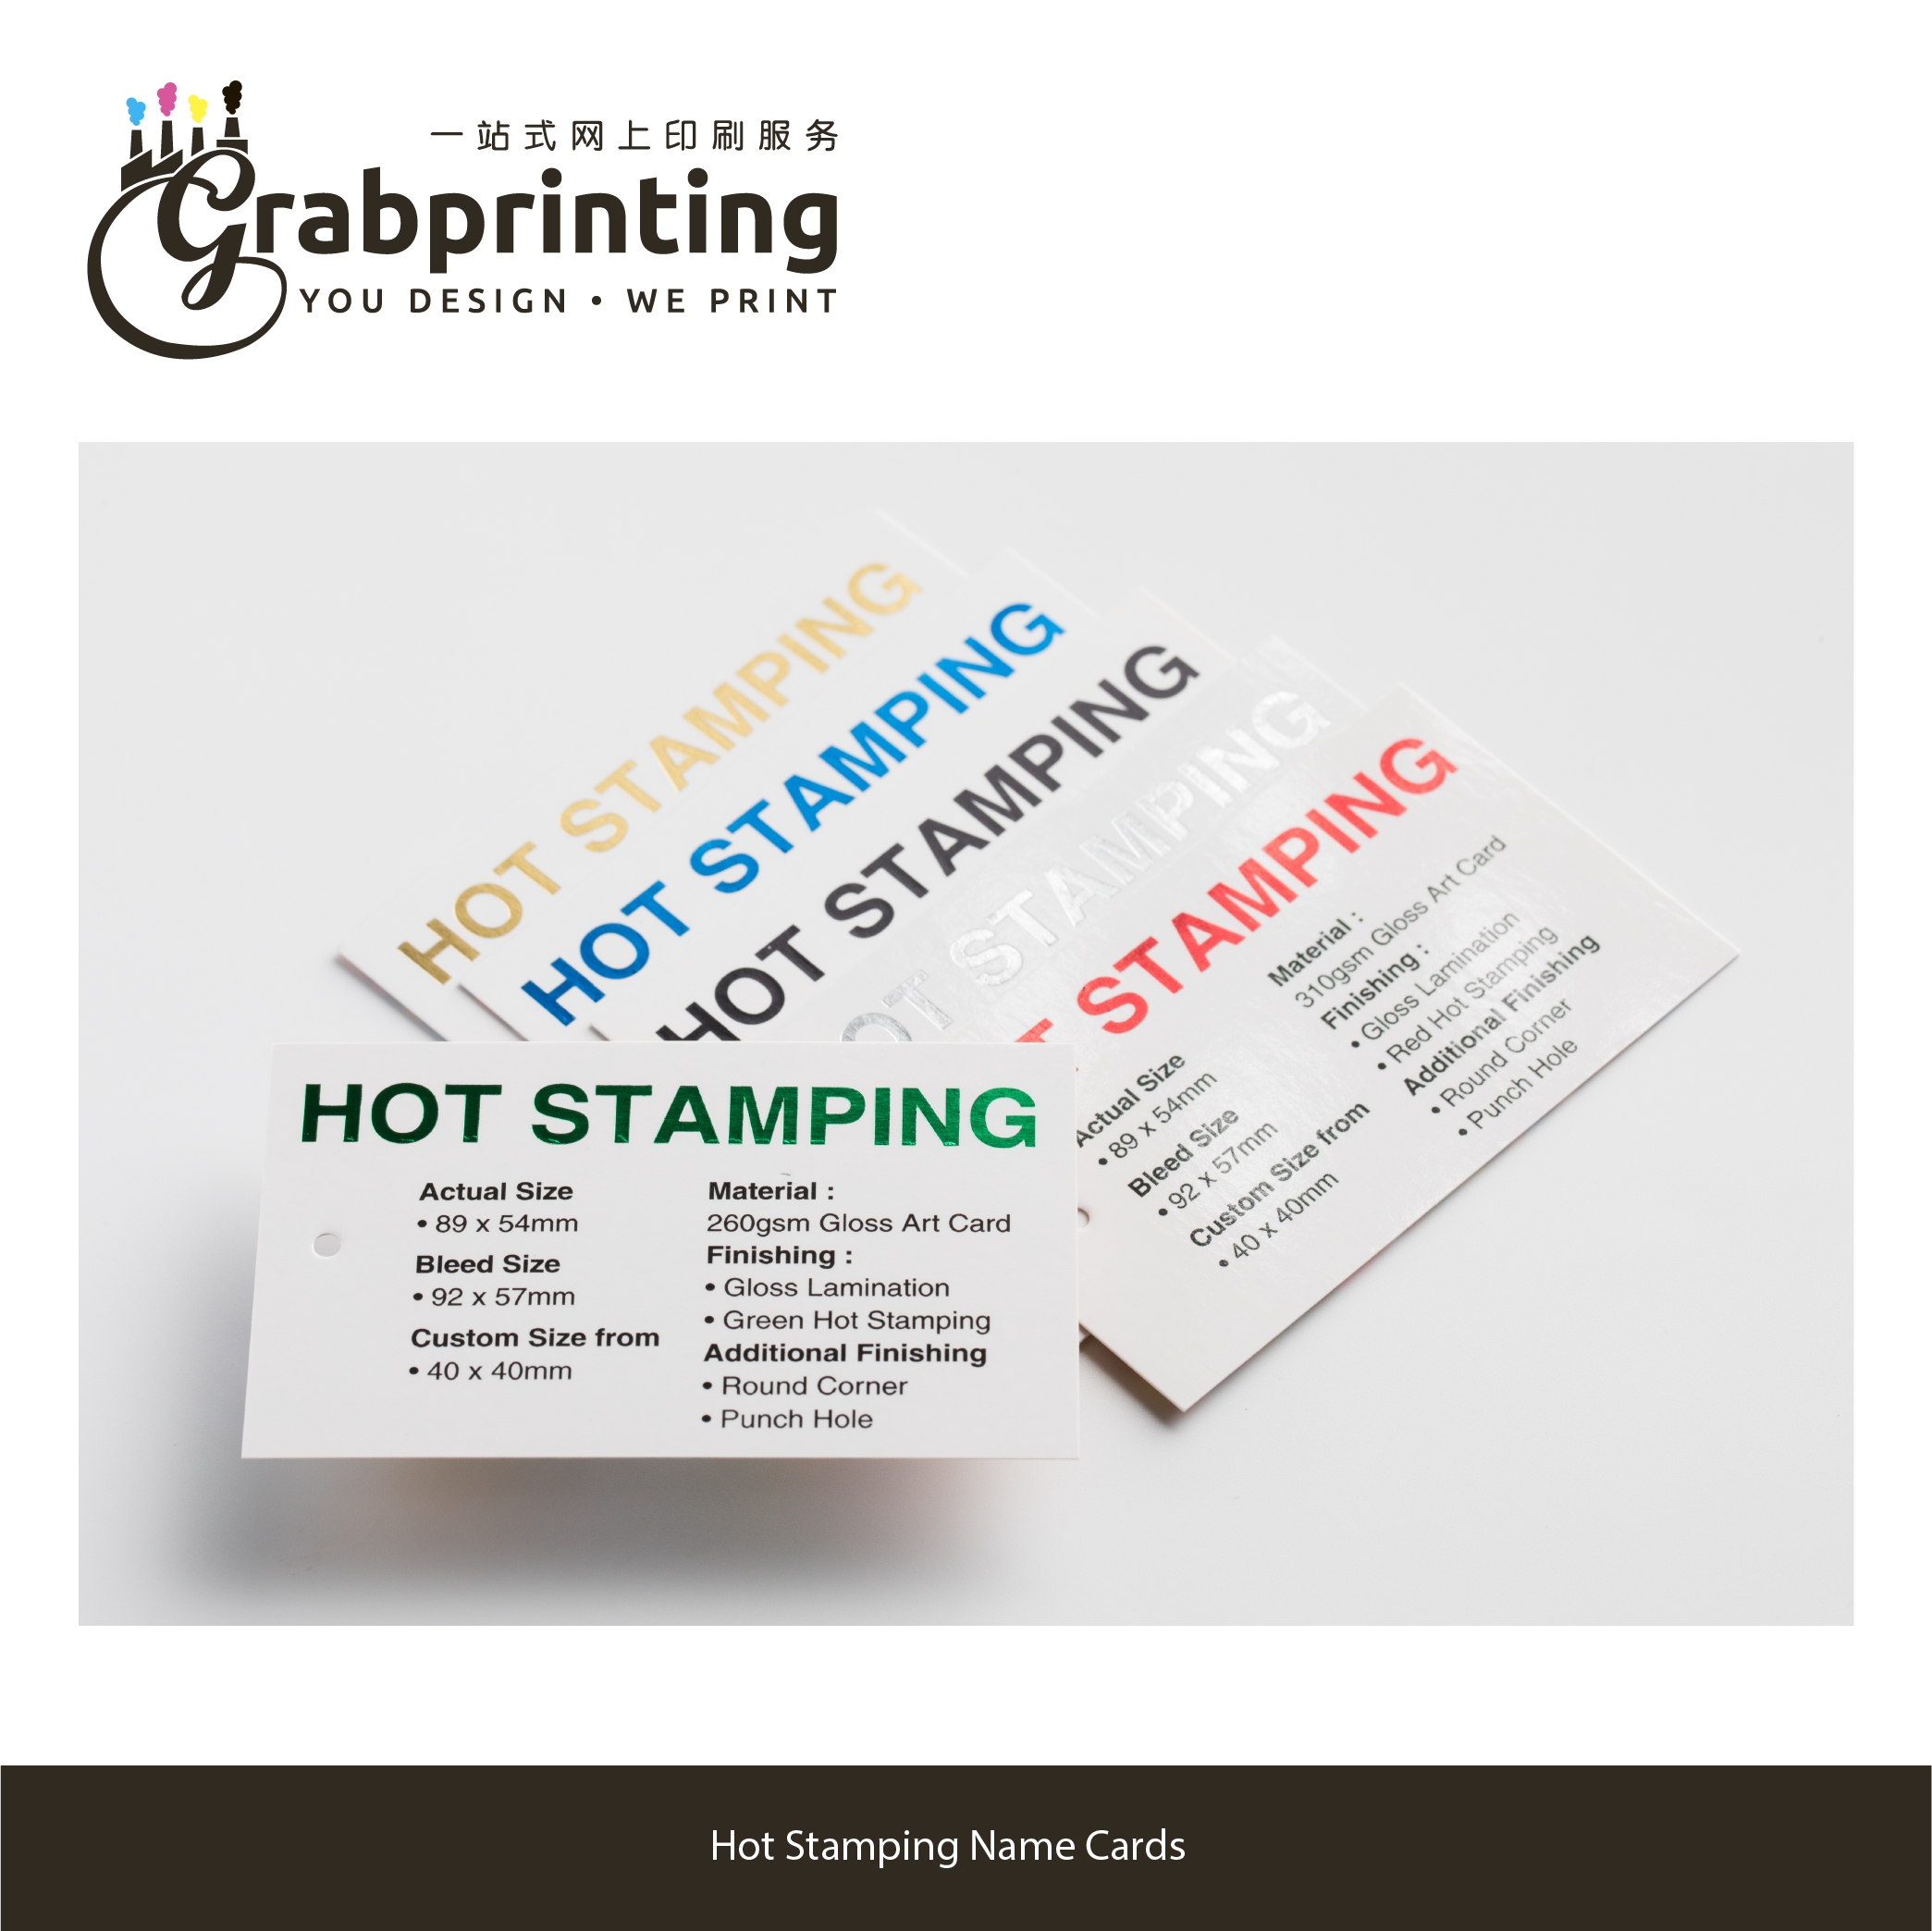 Name Card Sample Kit grabprinting 28 Hot Stamping Name Cards 501px 501px